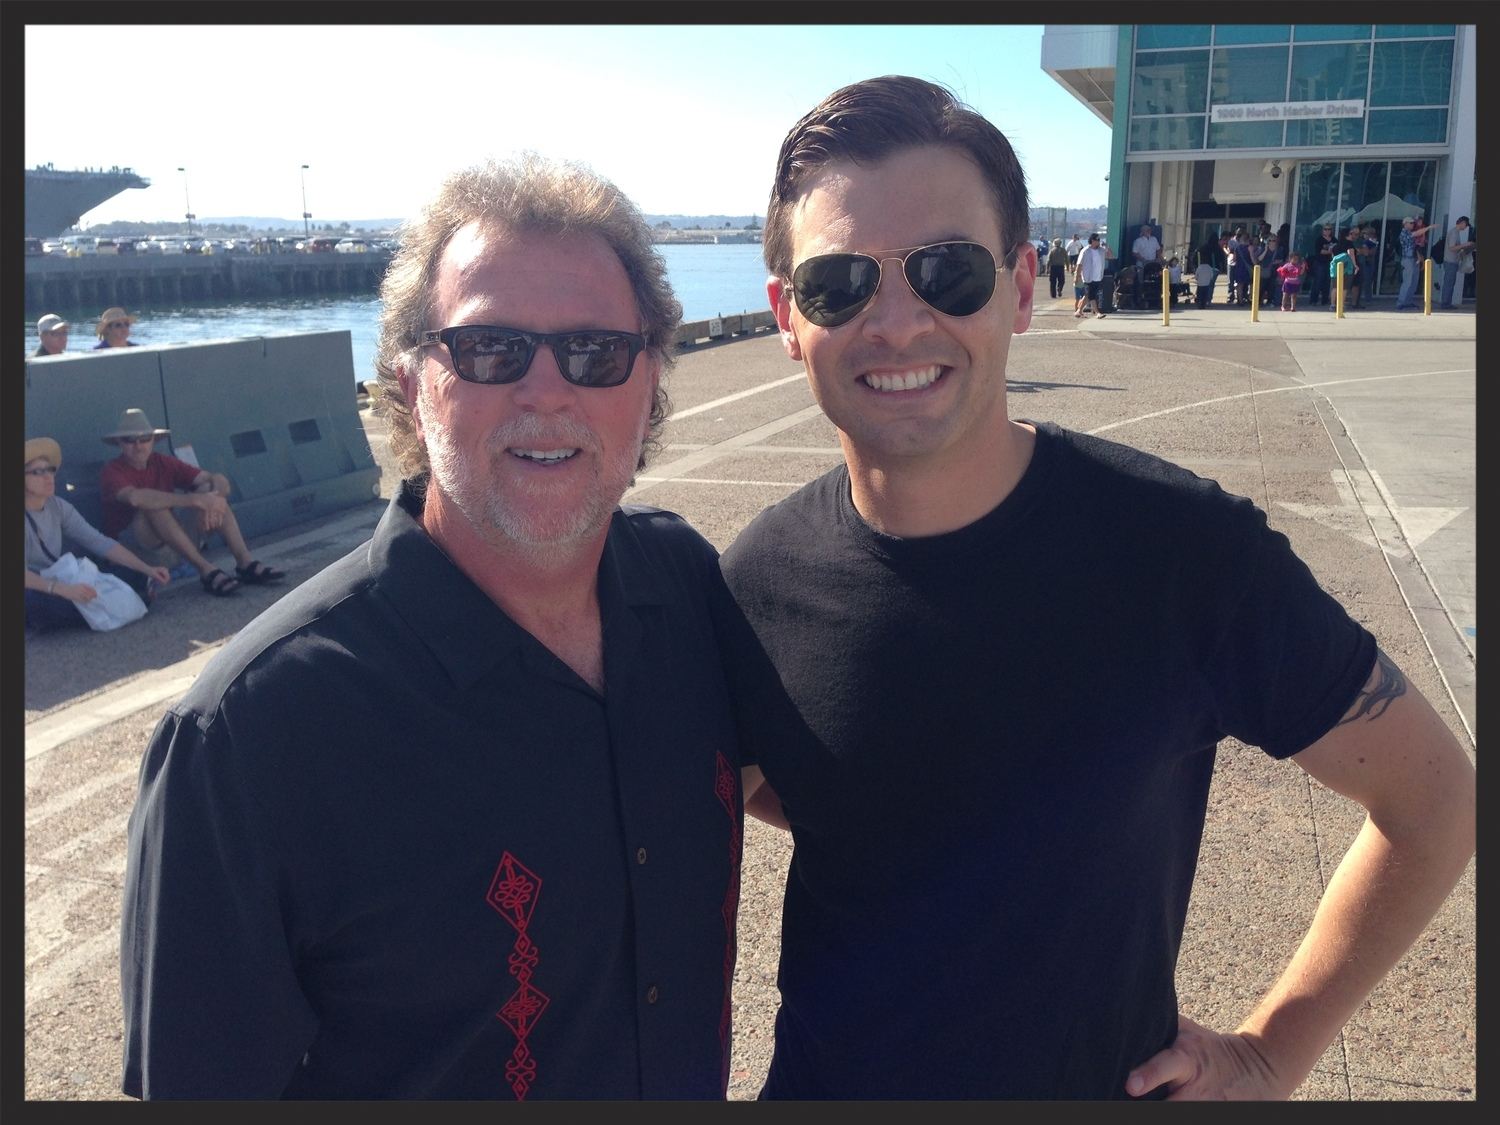 Jim Gibson and Anders Larsson. San Diego, CA 2014